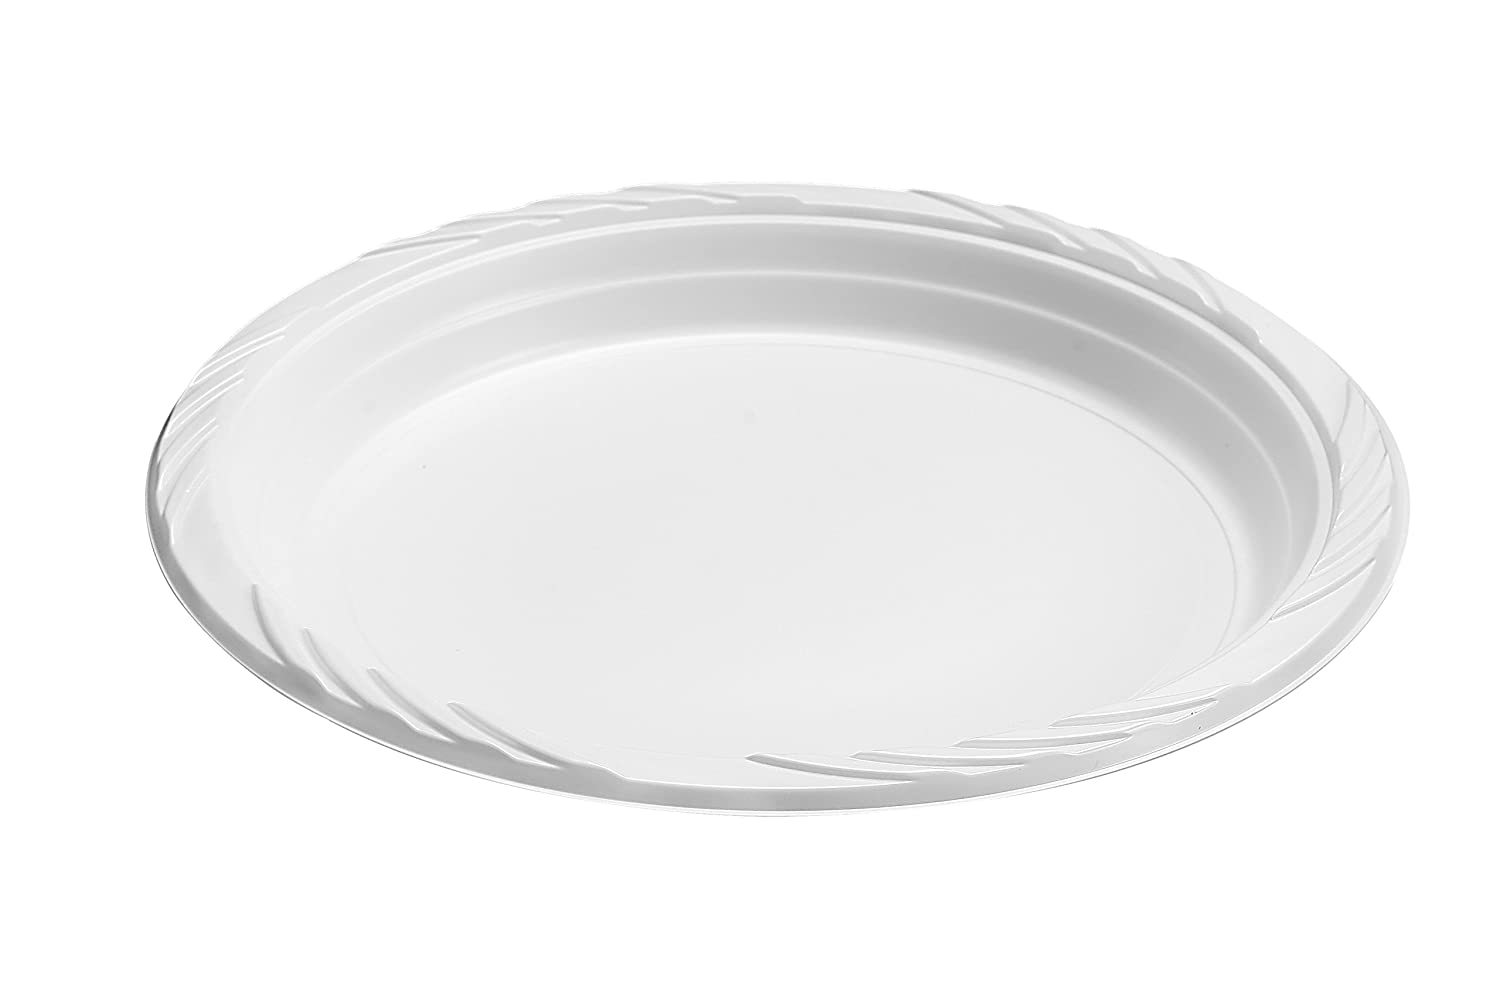 100 White 9 Clear Plastic Party Plates Dinner Disposable Wedding Platic